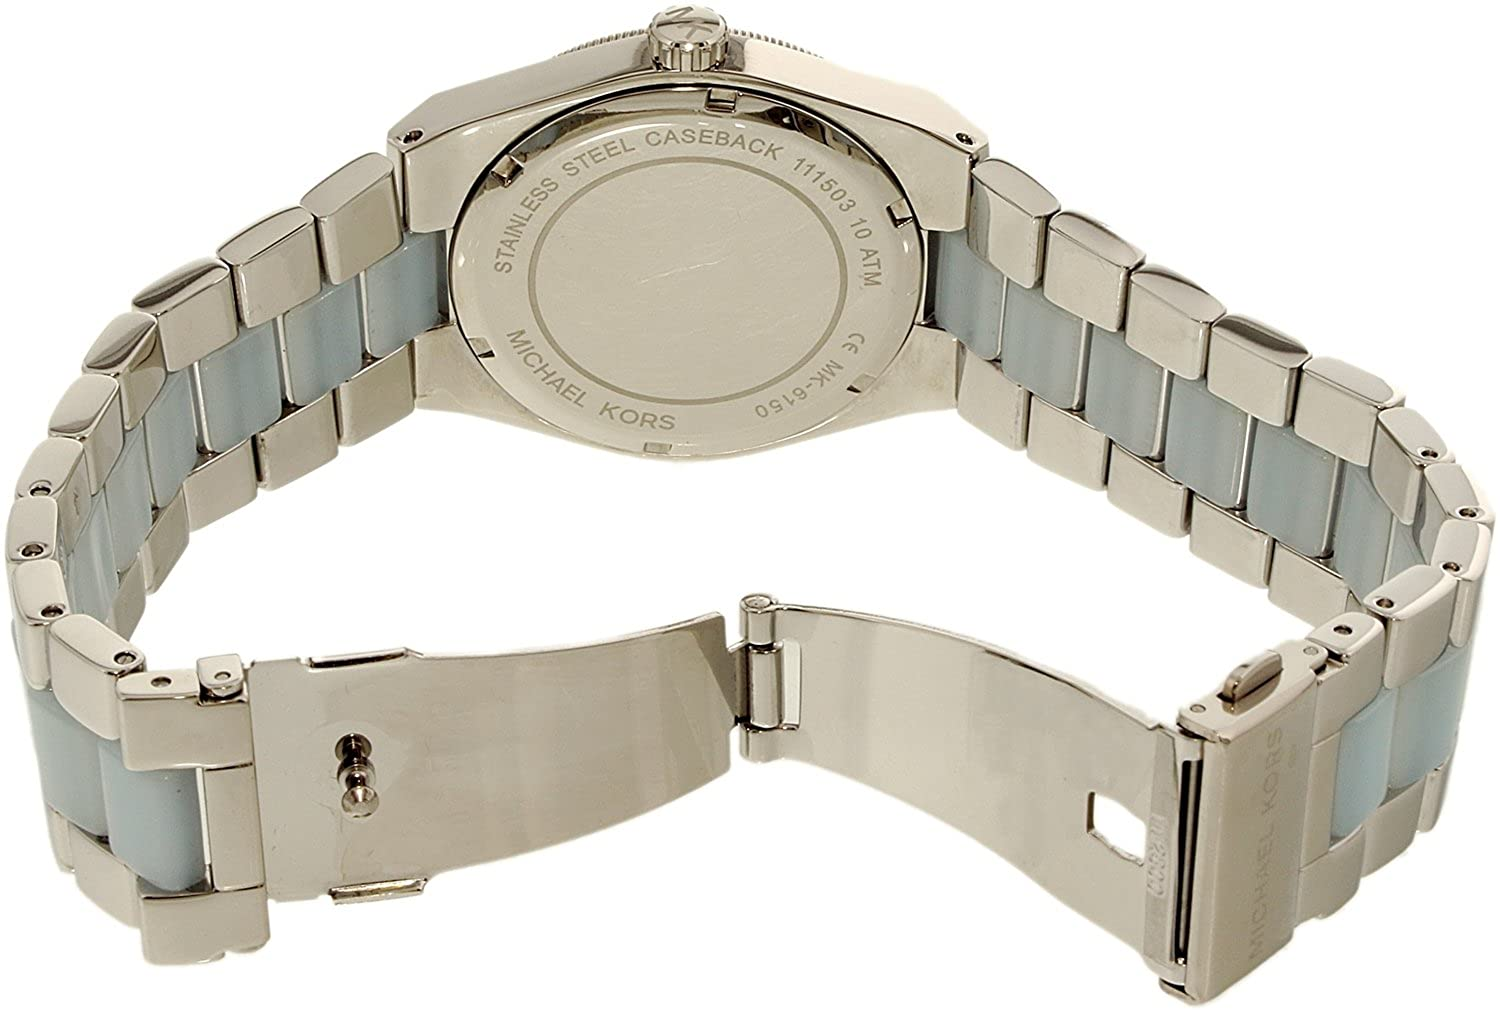 3bbe4e471fd1 Michael Kors MK6150 Channing Silver Dial Stainless Steel and Chambray  Acetate Ladies Watch  Michael Kors  Amazon.co.uk  Watches